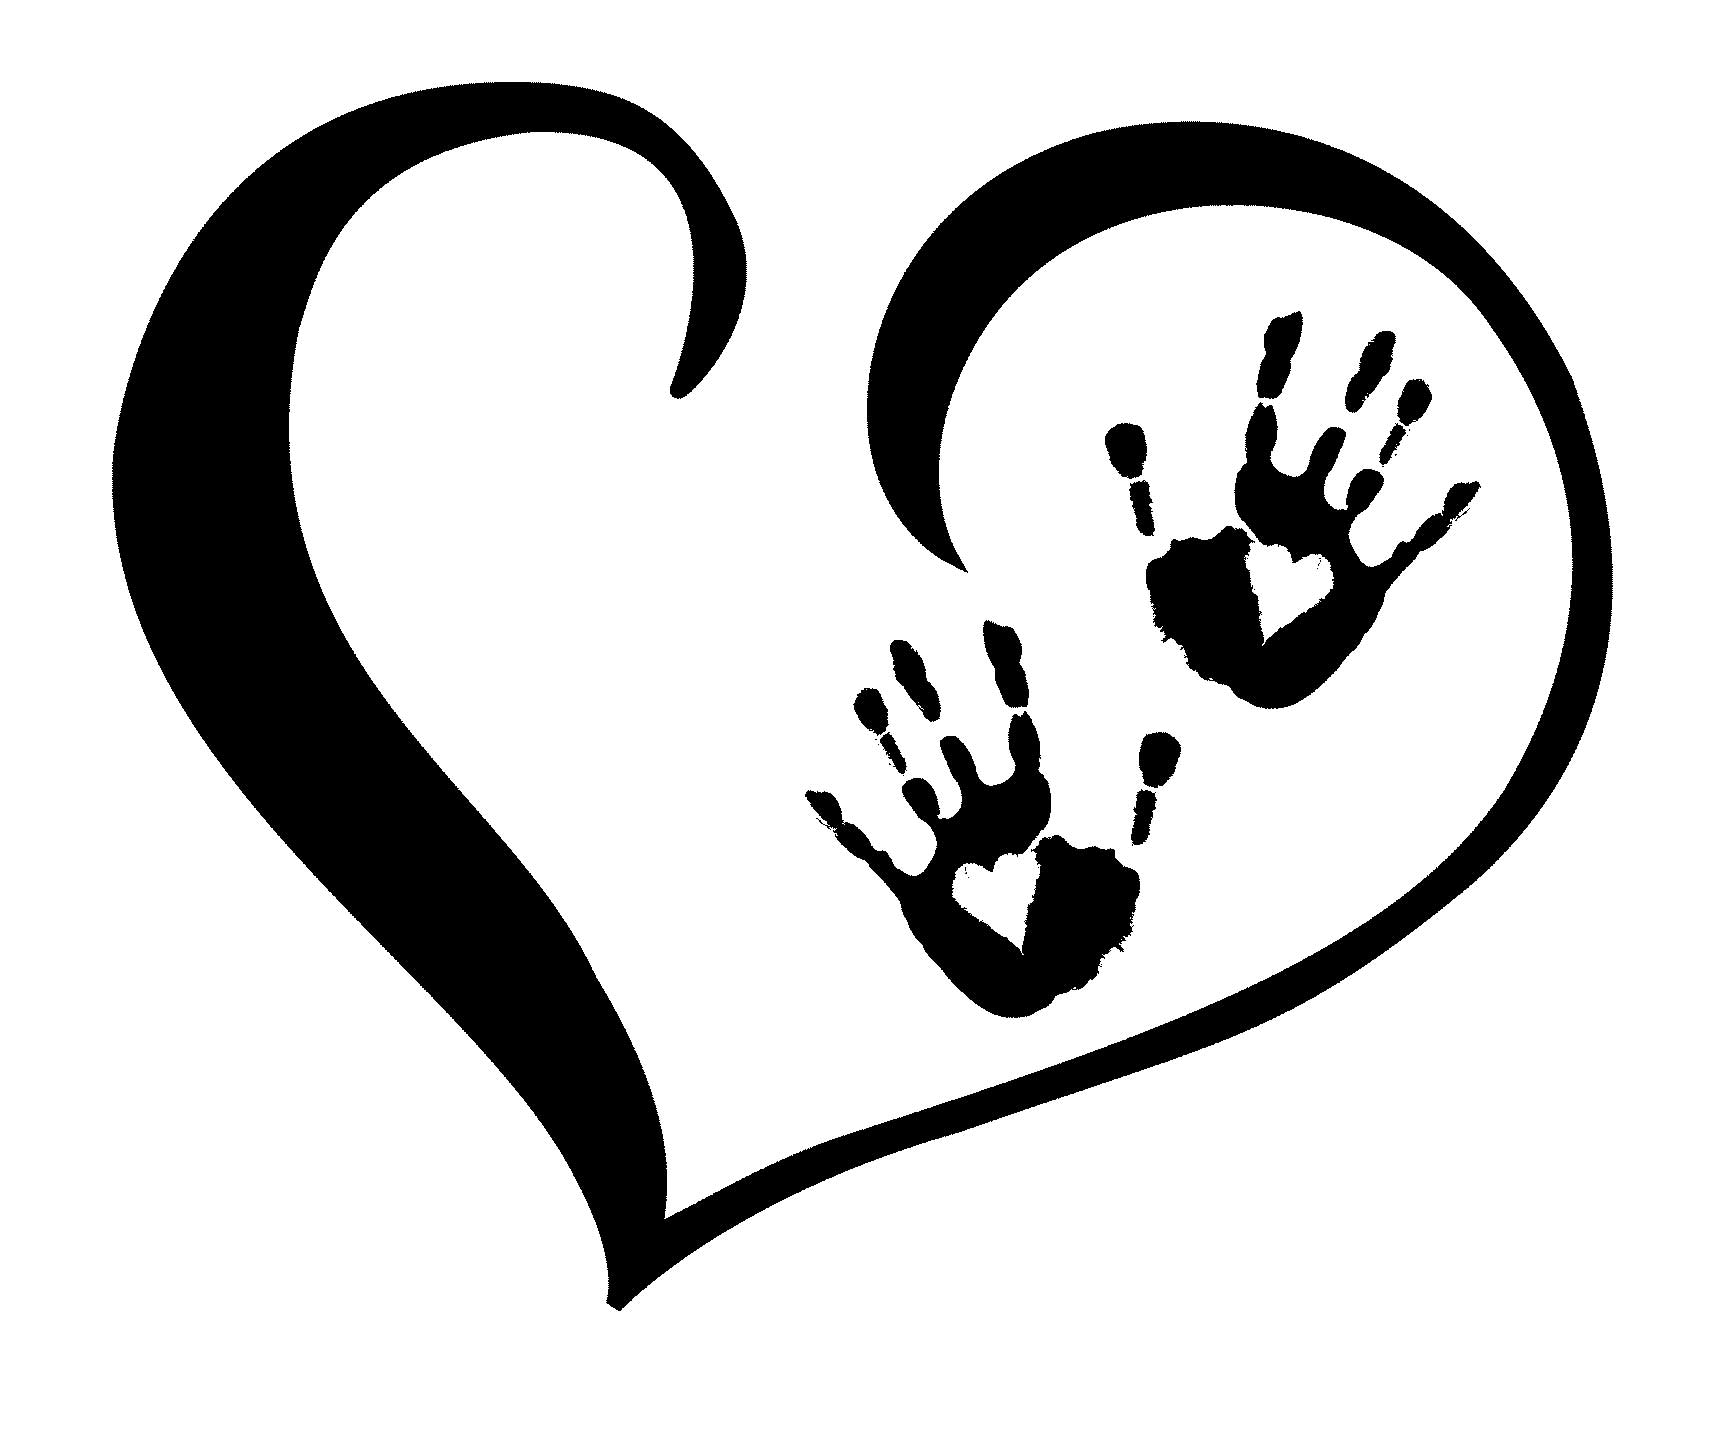 Free Holding Heart Cliparts, Download Free Clip Art, Free Clip Art.